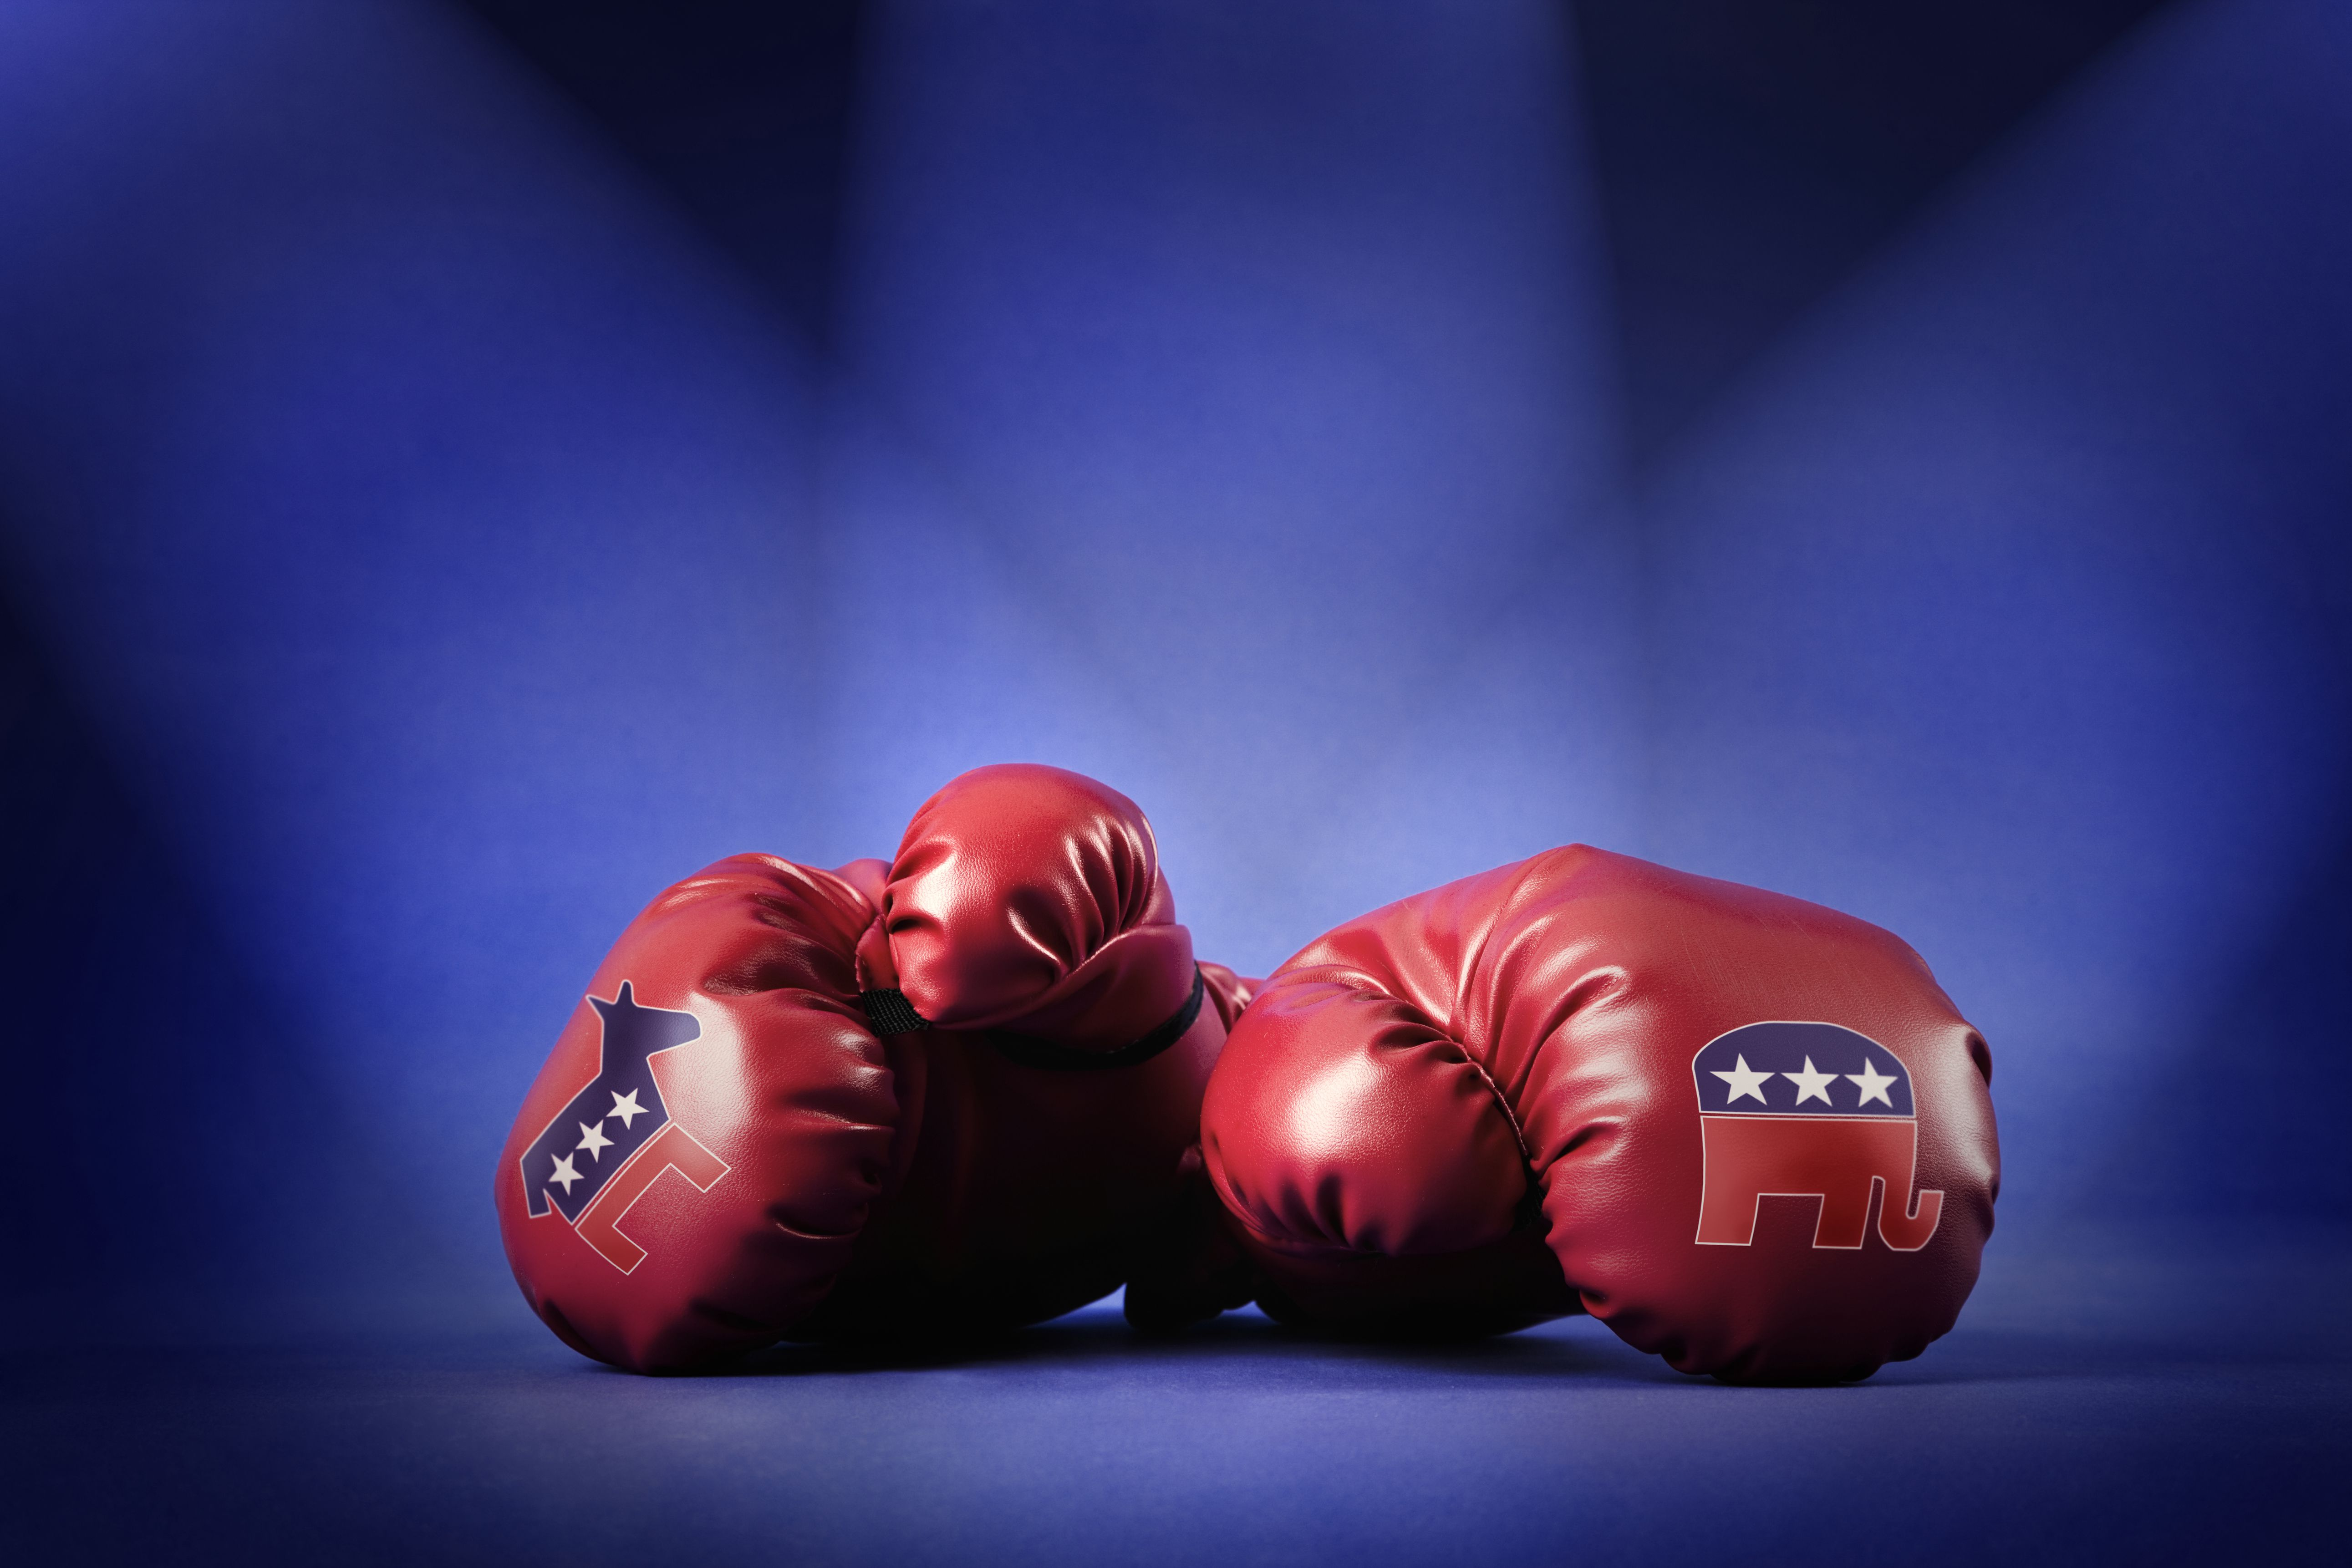 Democratic and Republican Party Symbols on Boxing Gloves